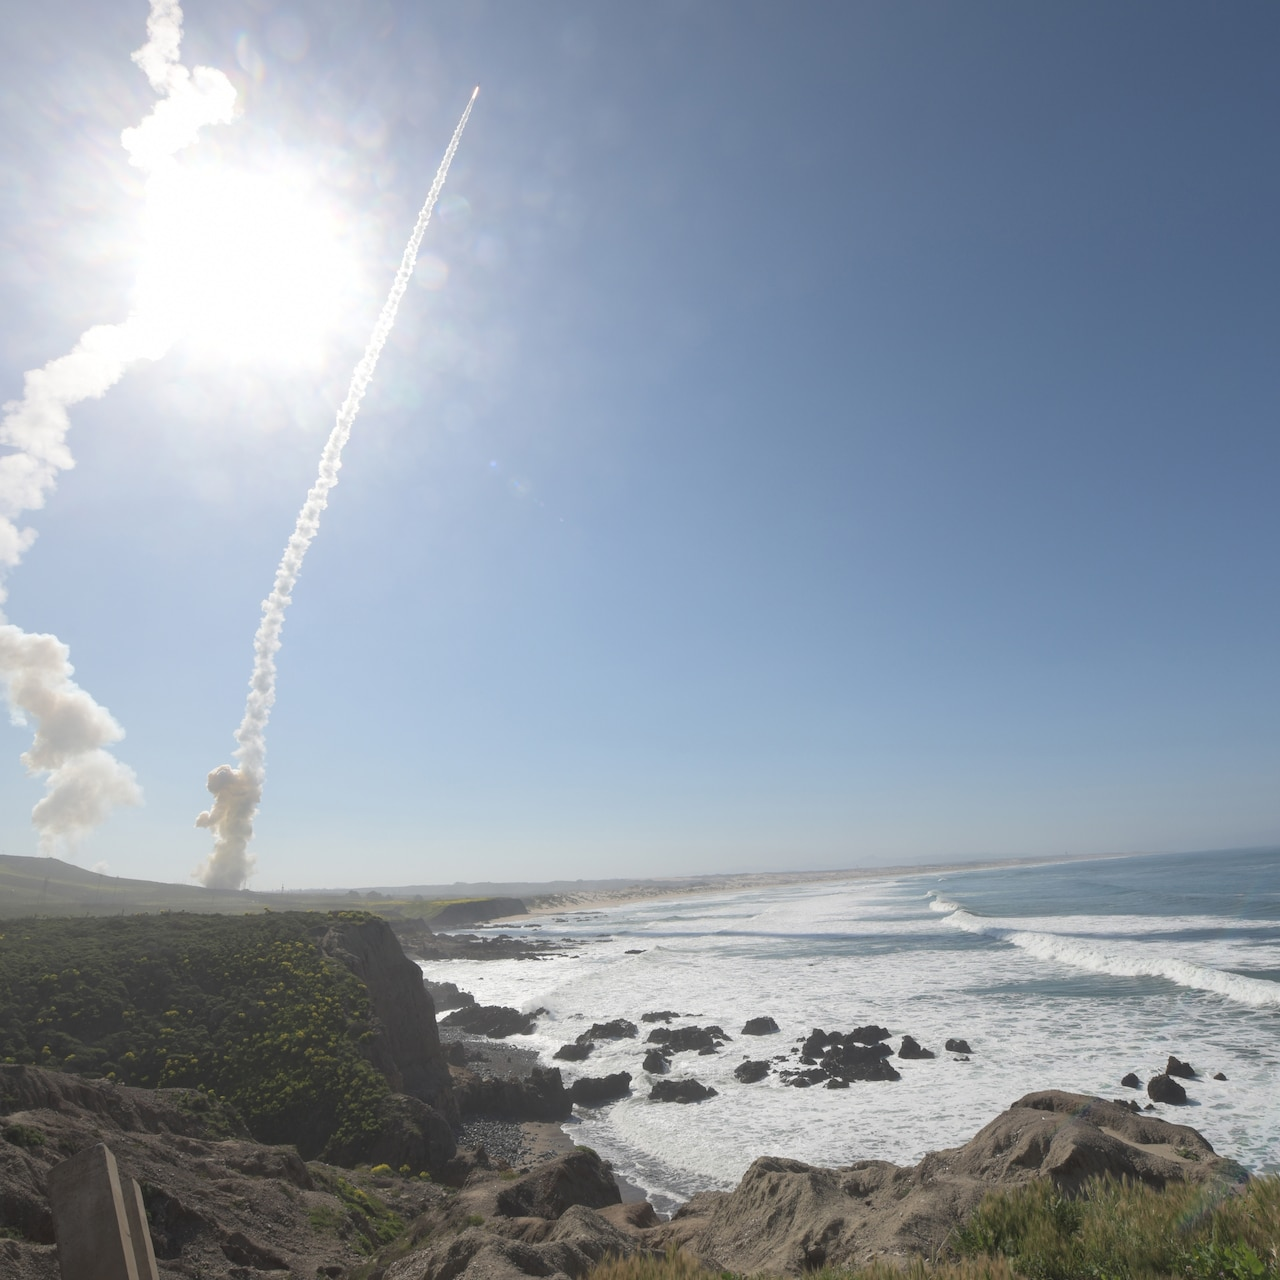 Missile launches into sky